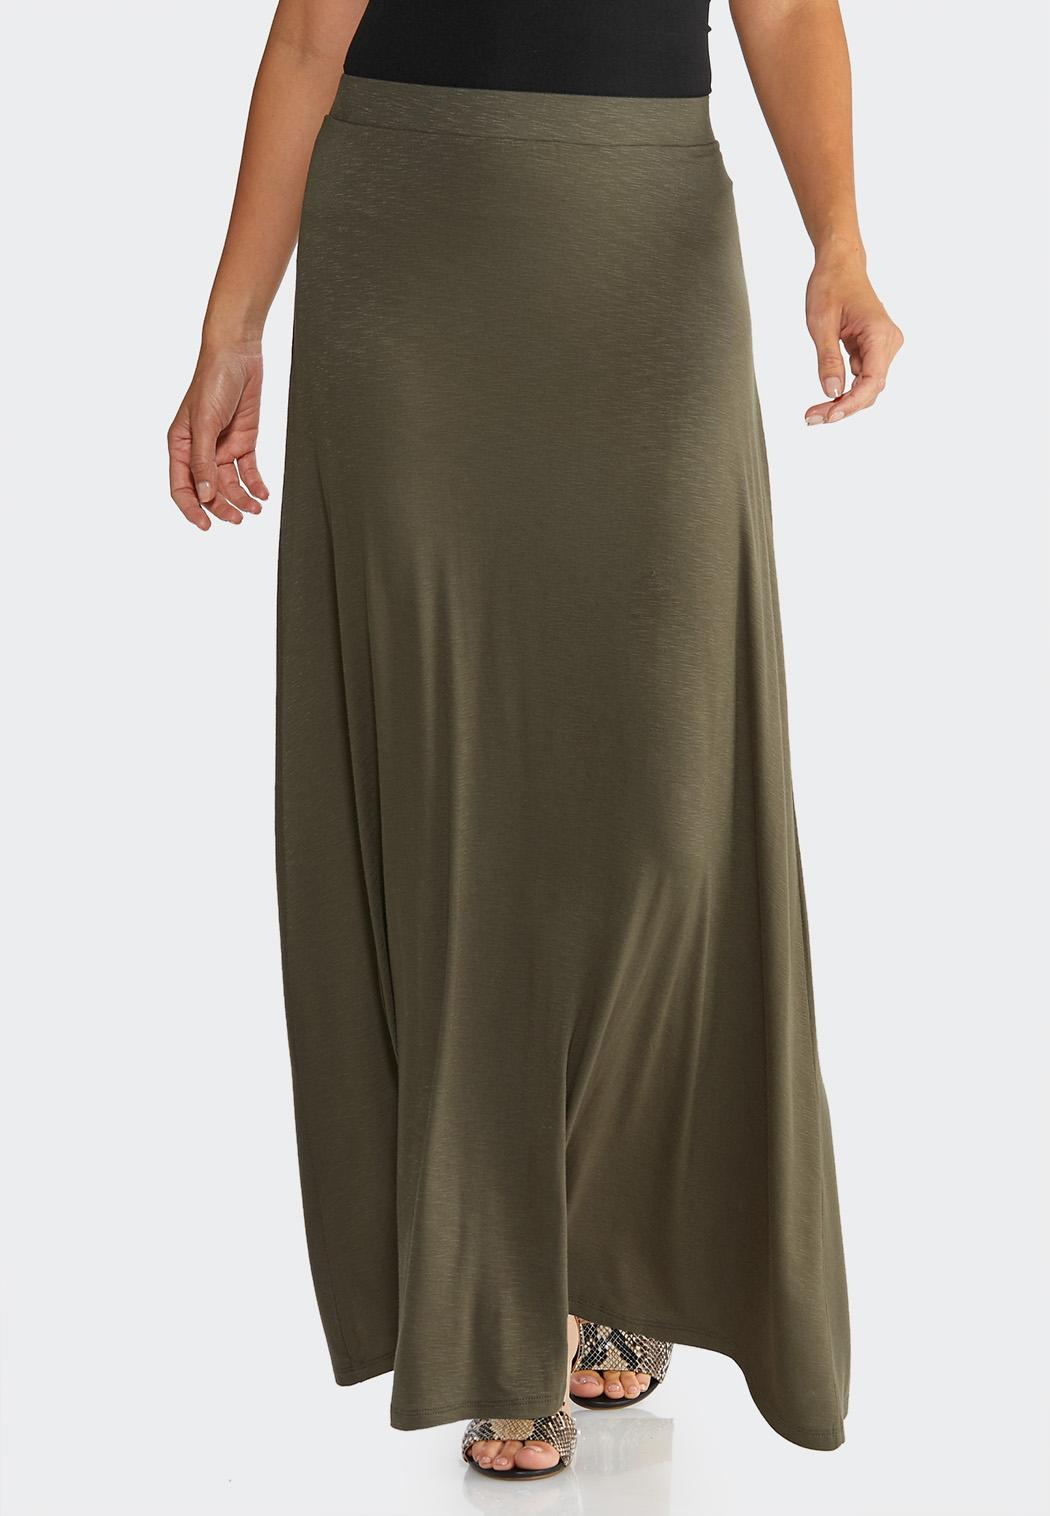 Plus Size Solid Knit Maxi Skirt